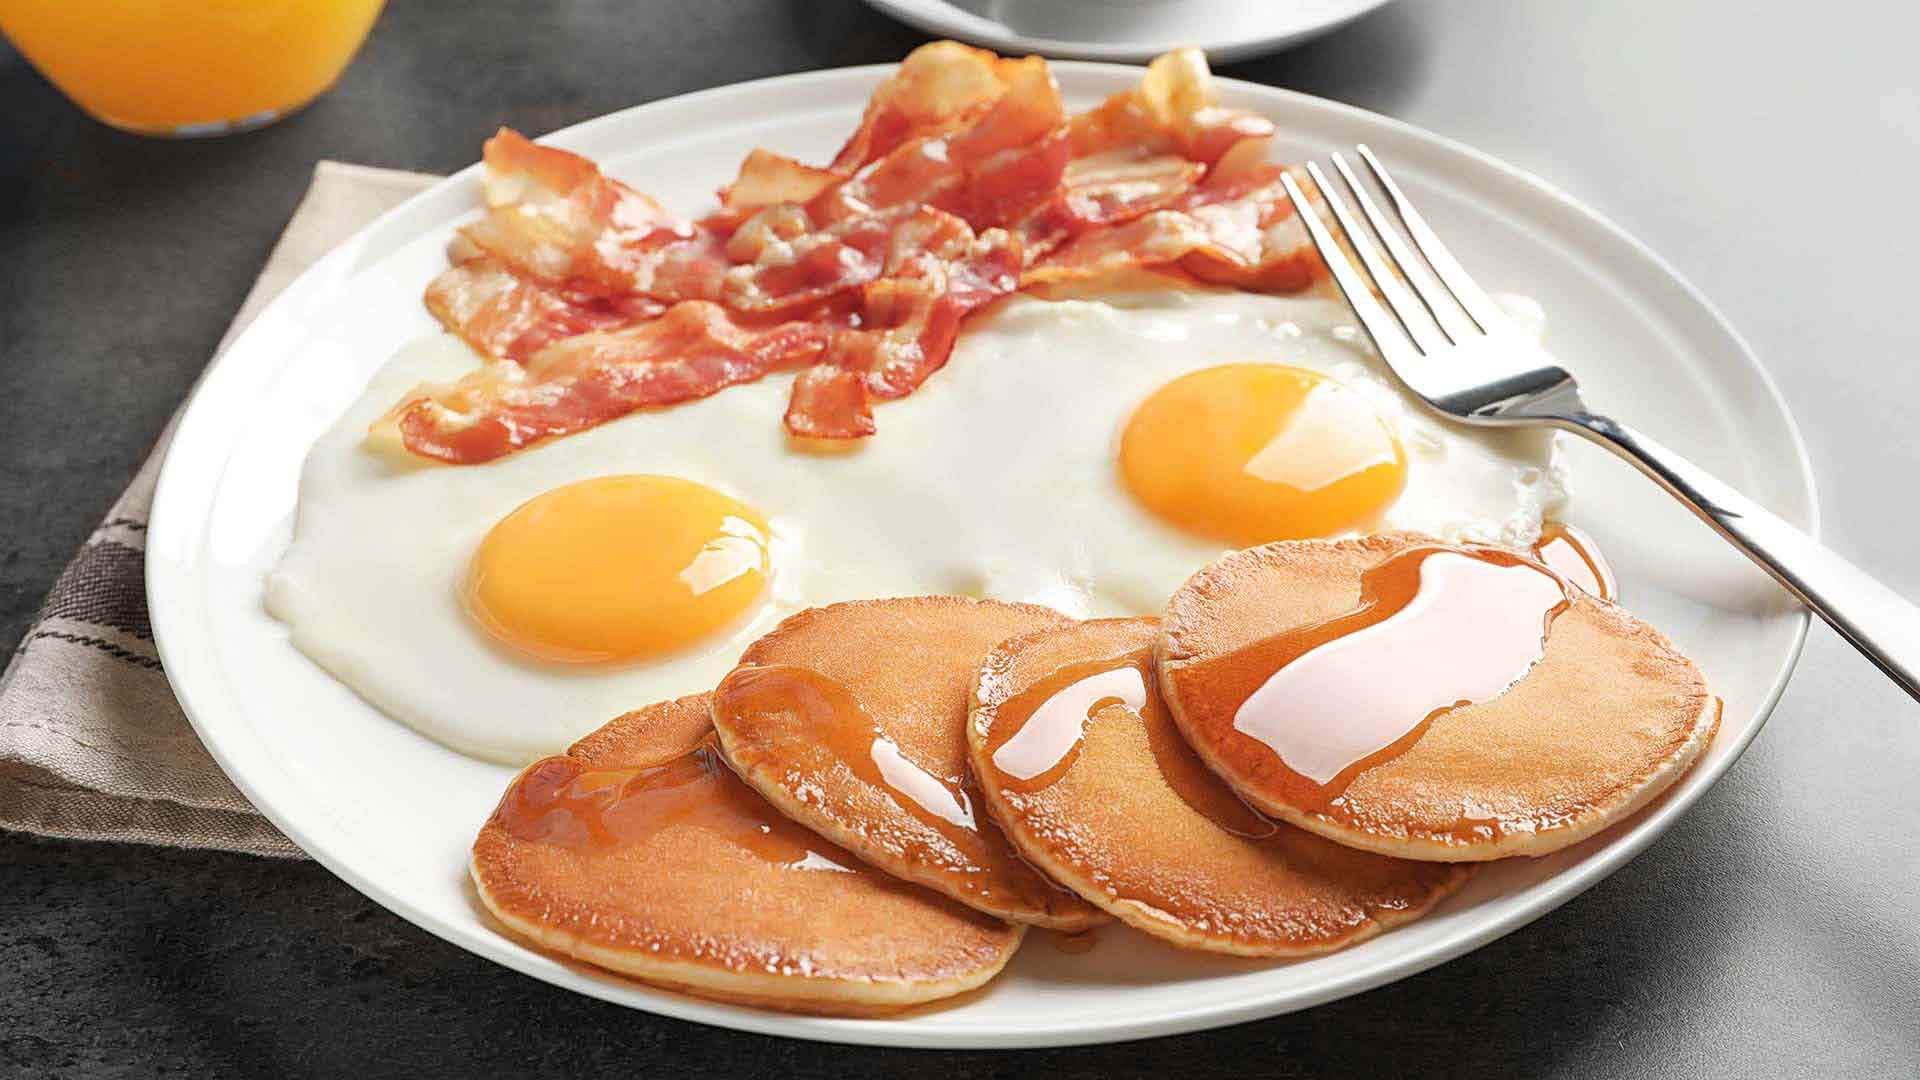 Plate of bacon eggs and pancakes